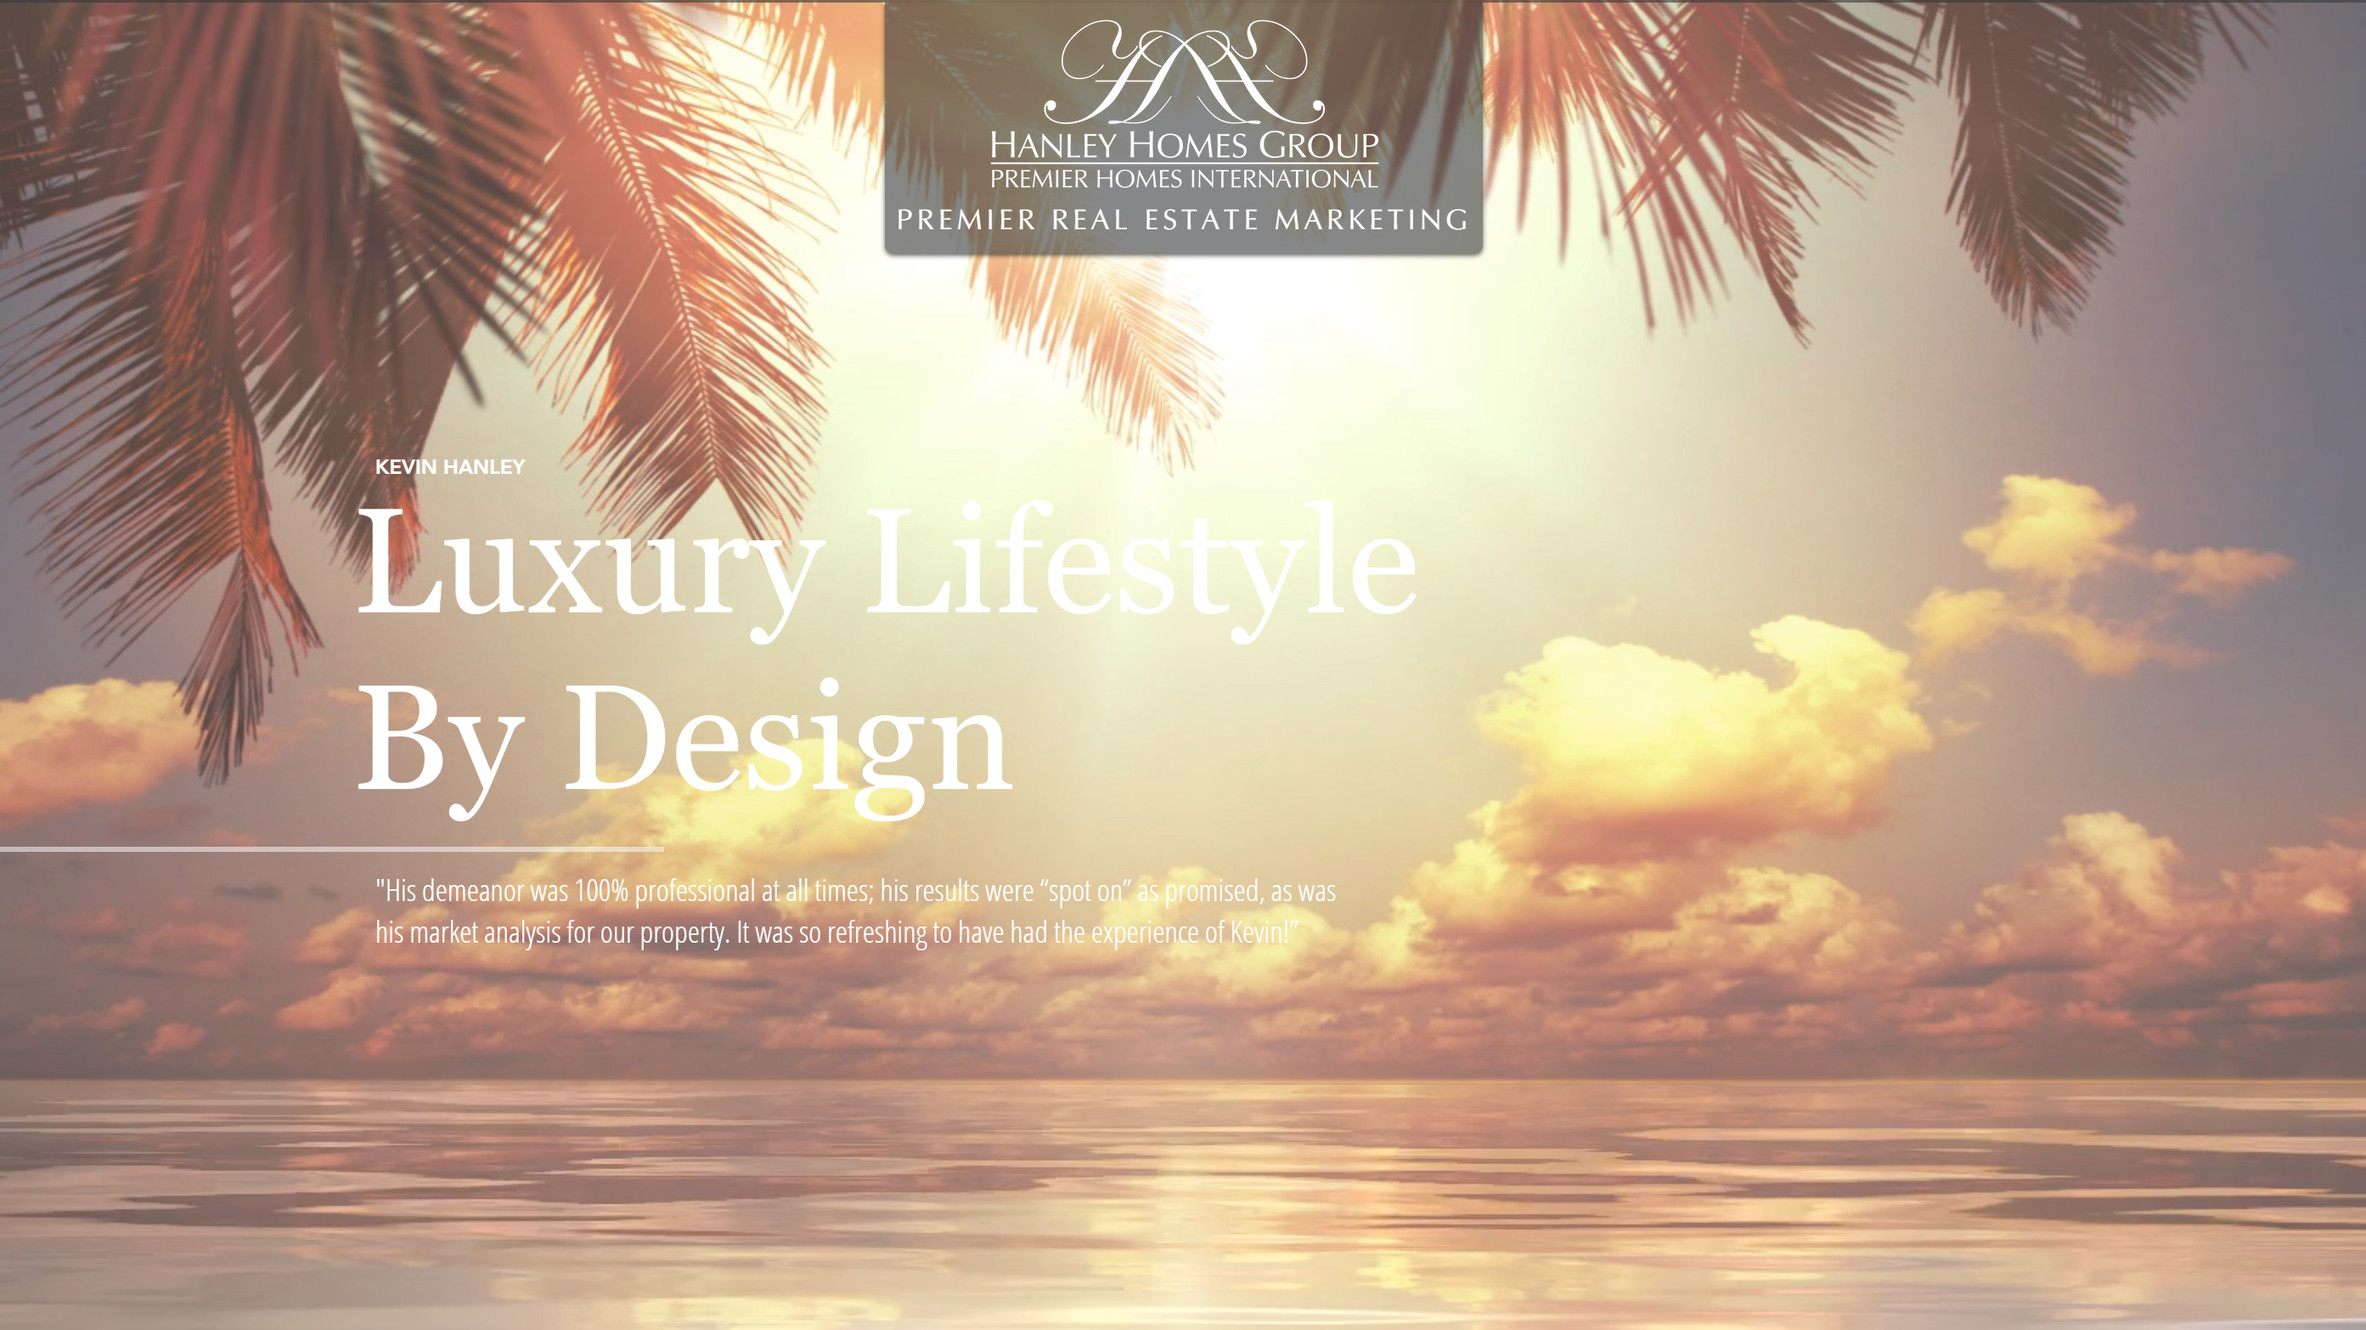 Luxury Real Estate | United States | The Hanley Homes Group